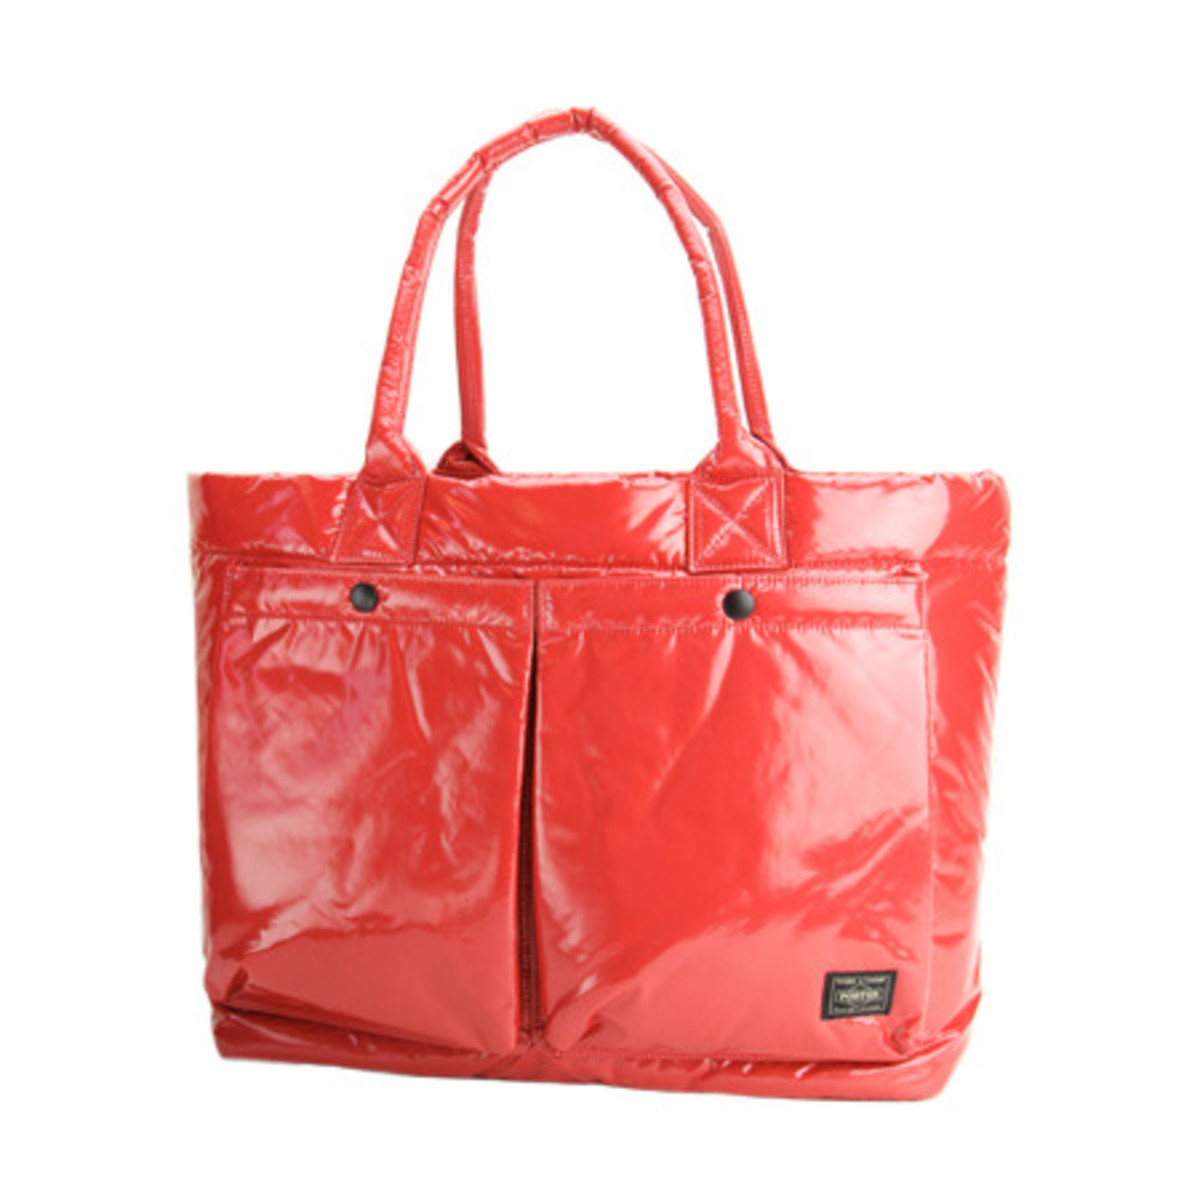 Tote Bag Large Red